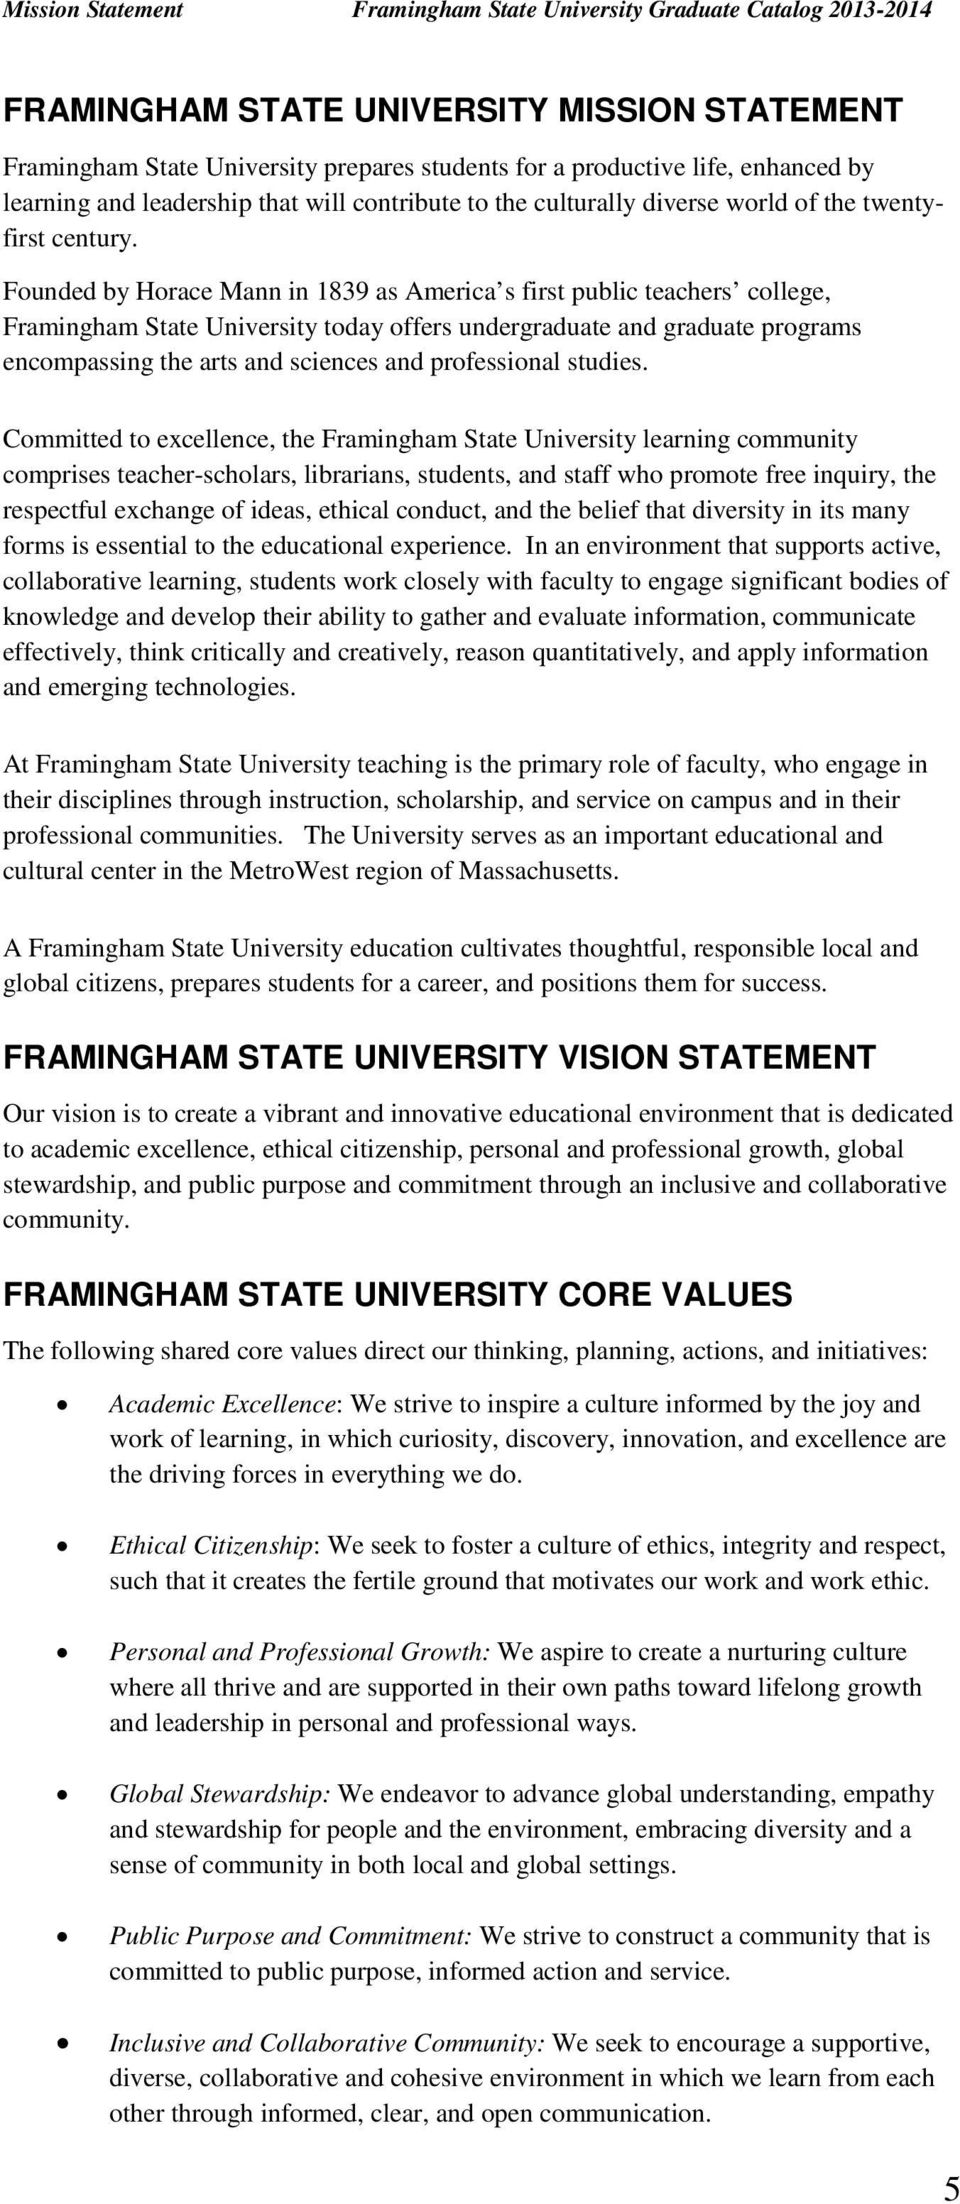 Founded by Horace Mann in 1839 as America s first public teachers college, Framingham State University today offers undergraduate and graduate programs encompassing the arts and sciences and